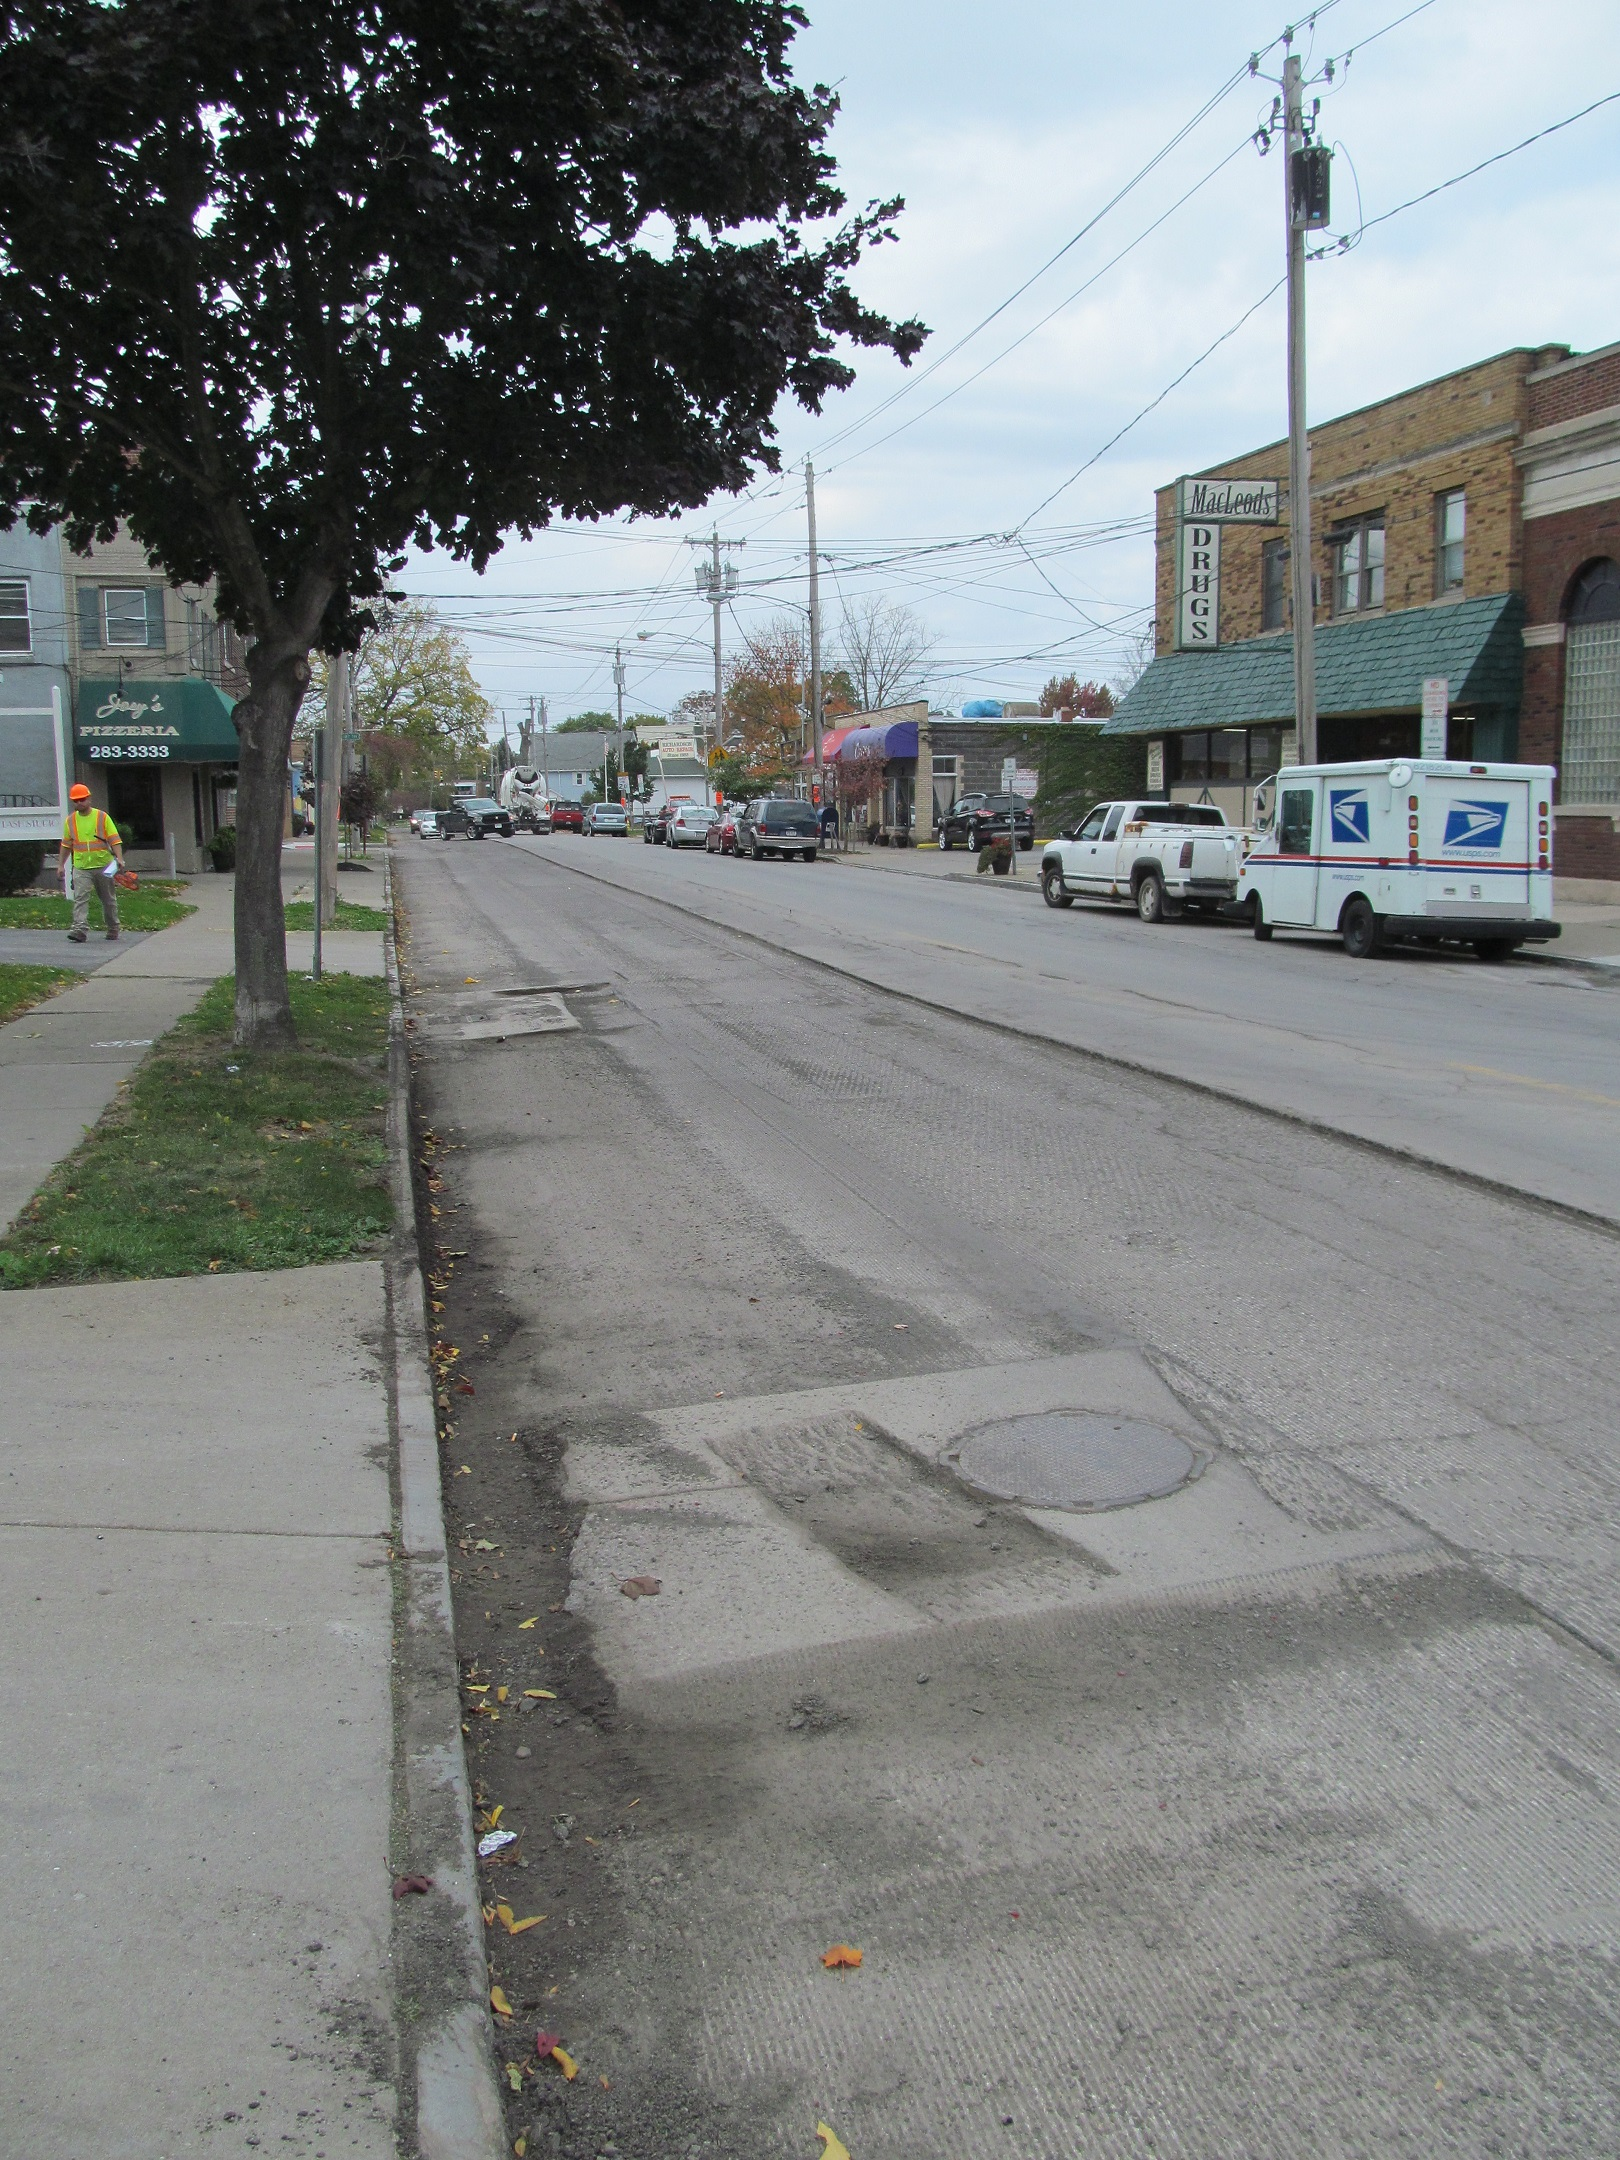 The standard practice of only 2 inches of milling and repaving in the city of Niagara Falls, such as is taking place on Buffalo Avenue, usually results in the blacktop cracking and potholes developing within just a few years, due to the brutally cold winters here.